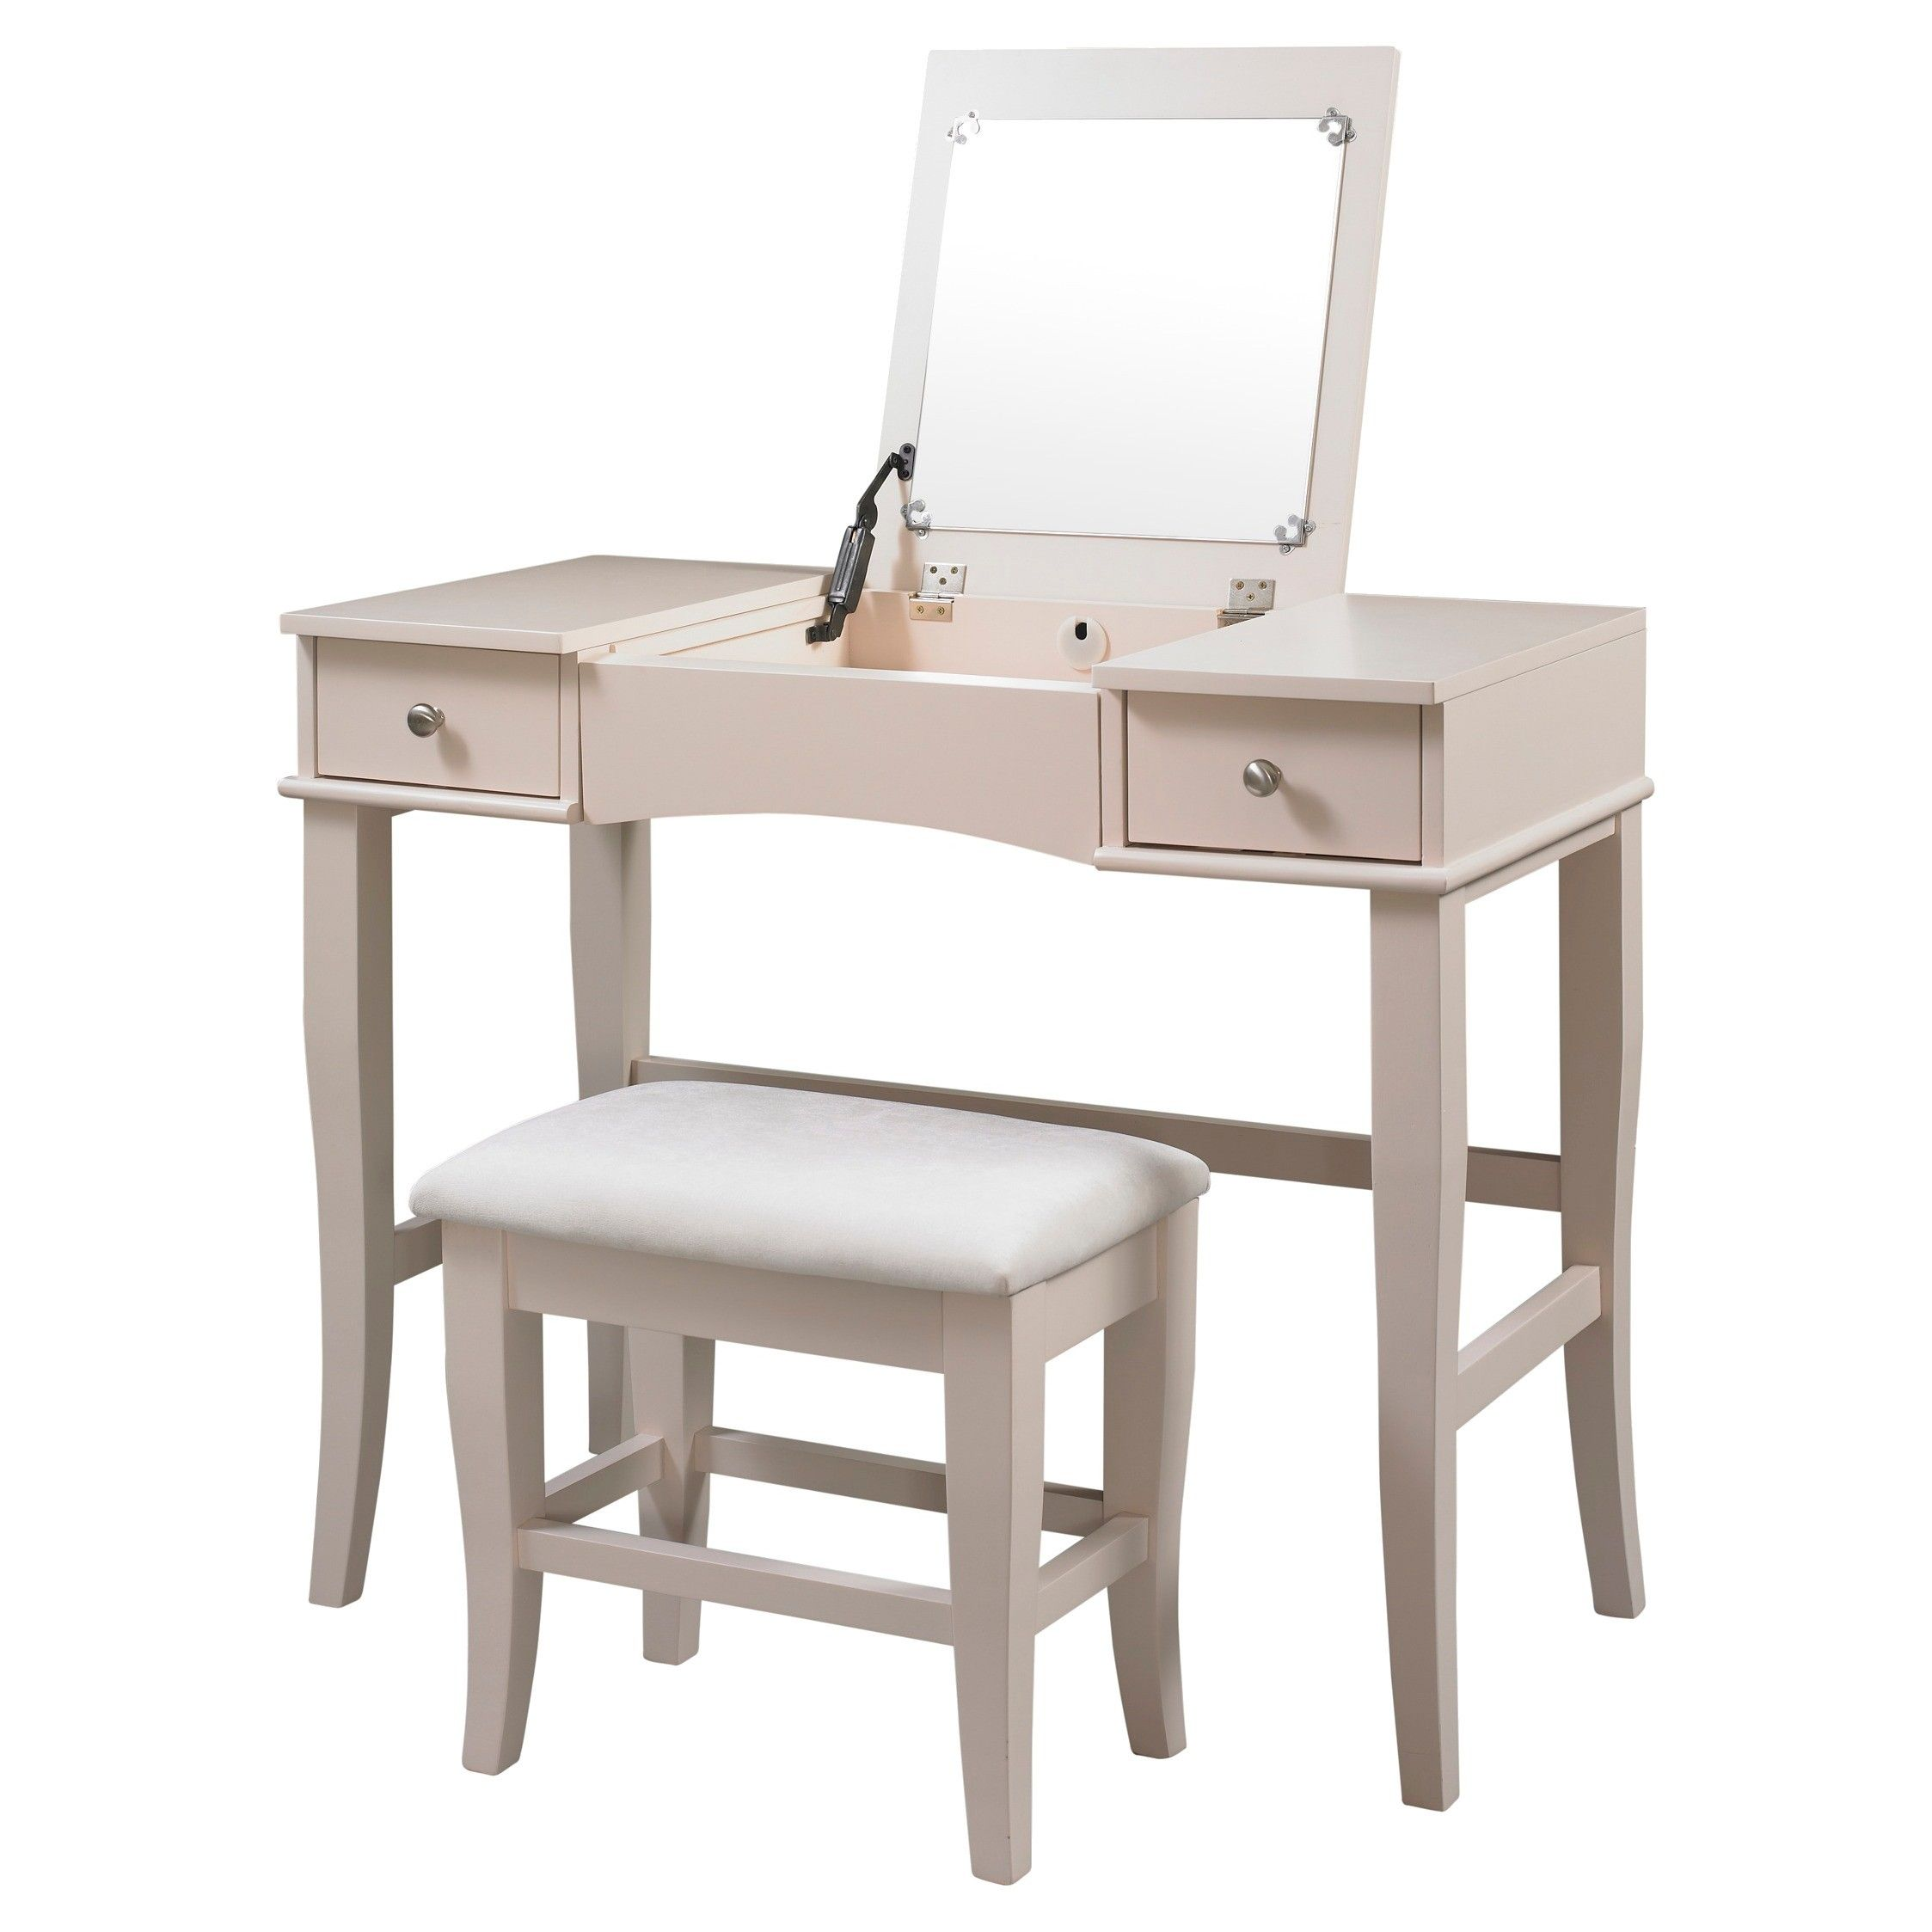 Is Perfect For Providing Storage And Grooming Space In A